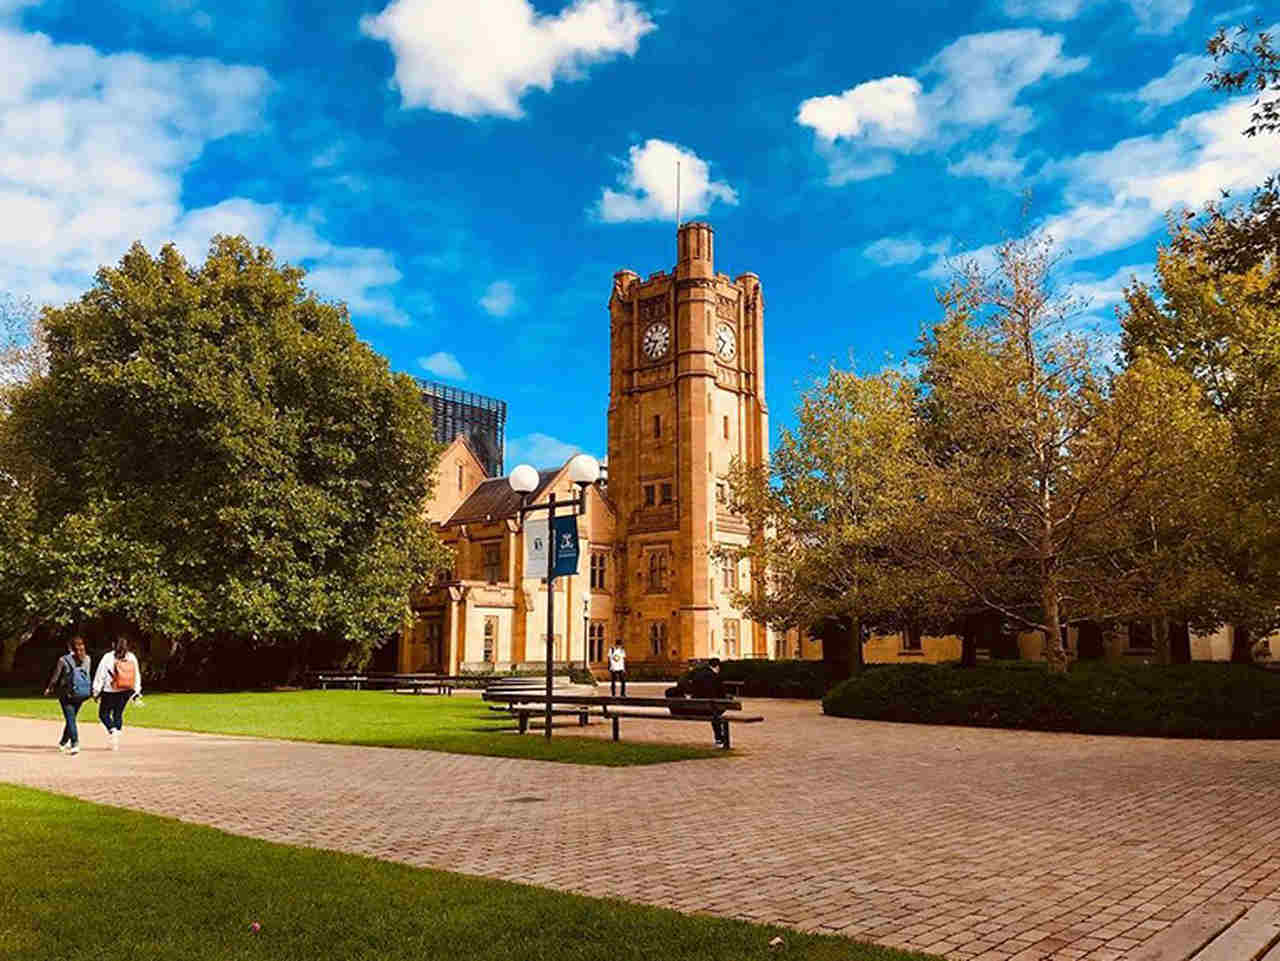 Sky, Landmark, Tree, Grass, Estate, Architecture, Building, Public space, Cloud, Campus, Stately home, City, Sunlight, Park, Monument, House, Lawn, College, Castle, University of Melbourne, The University of Sydney, University, Group of Eight, Education